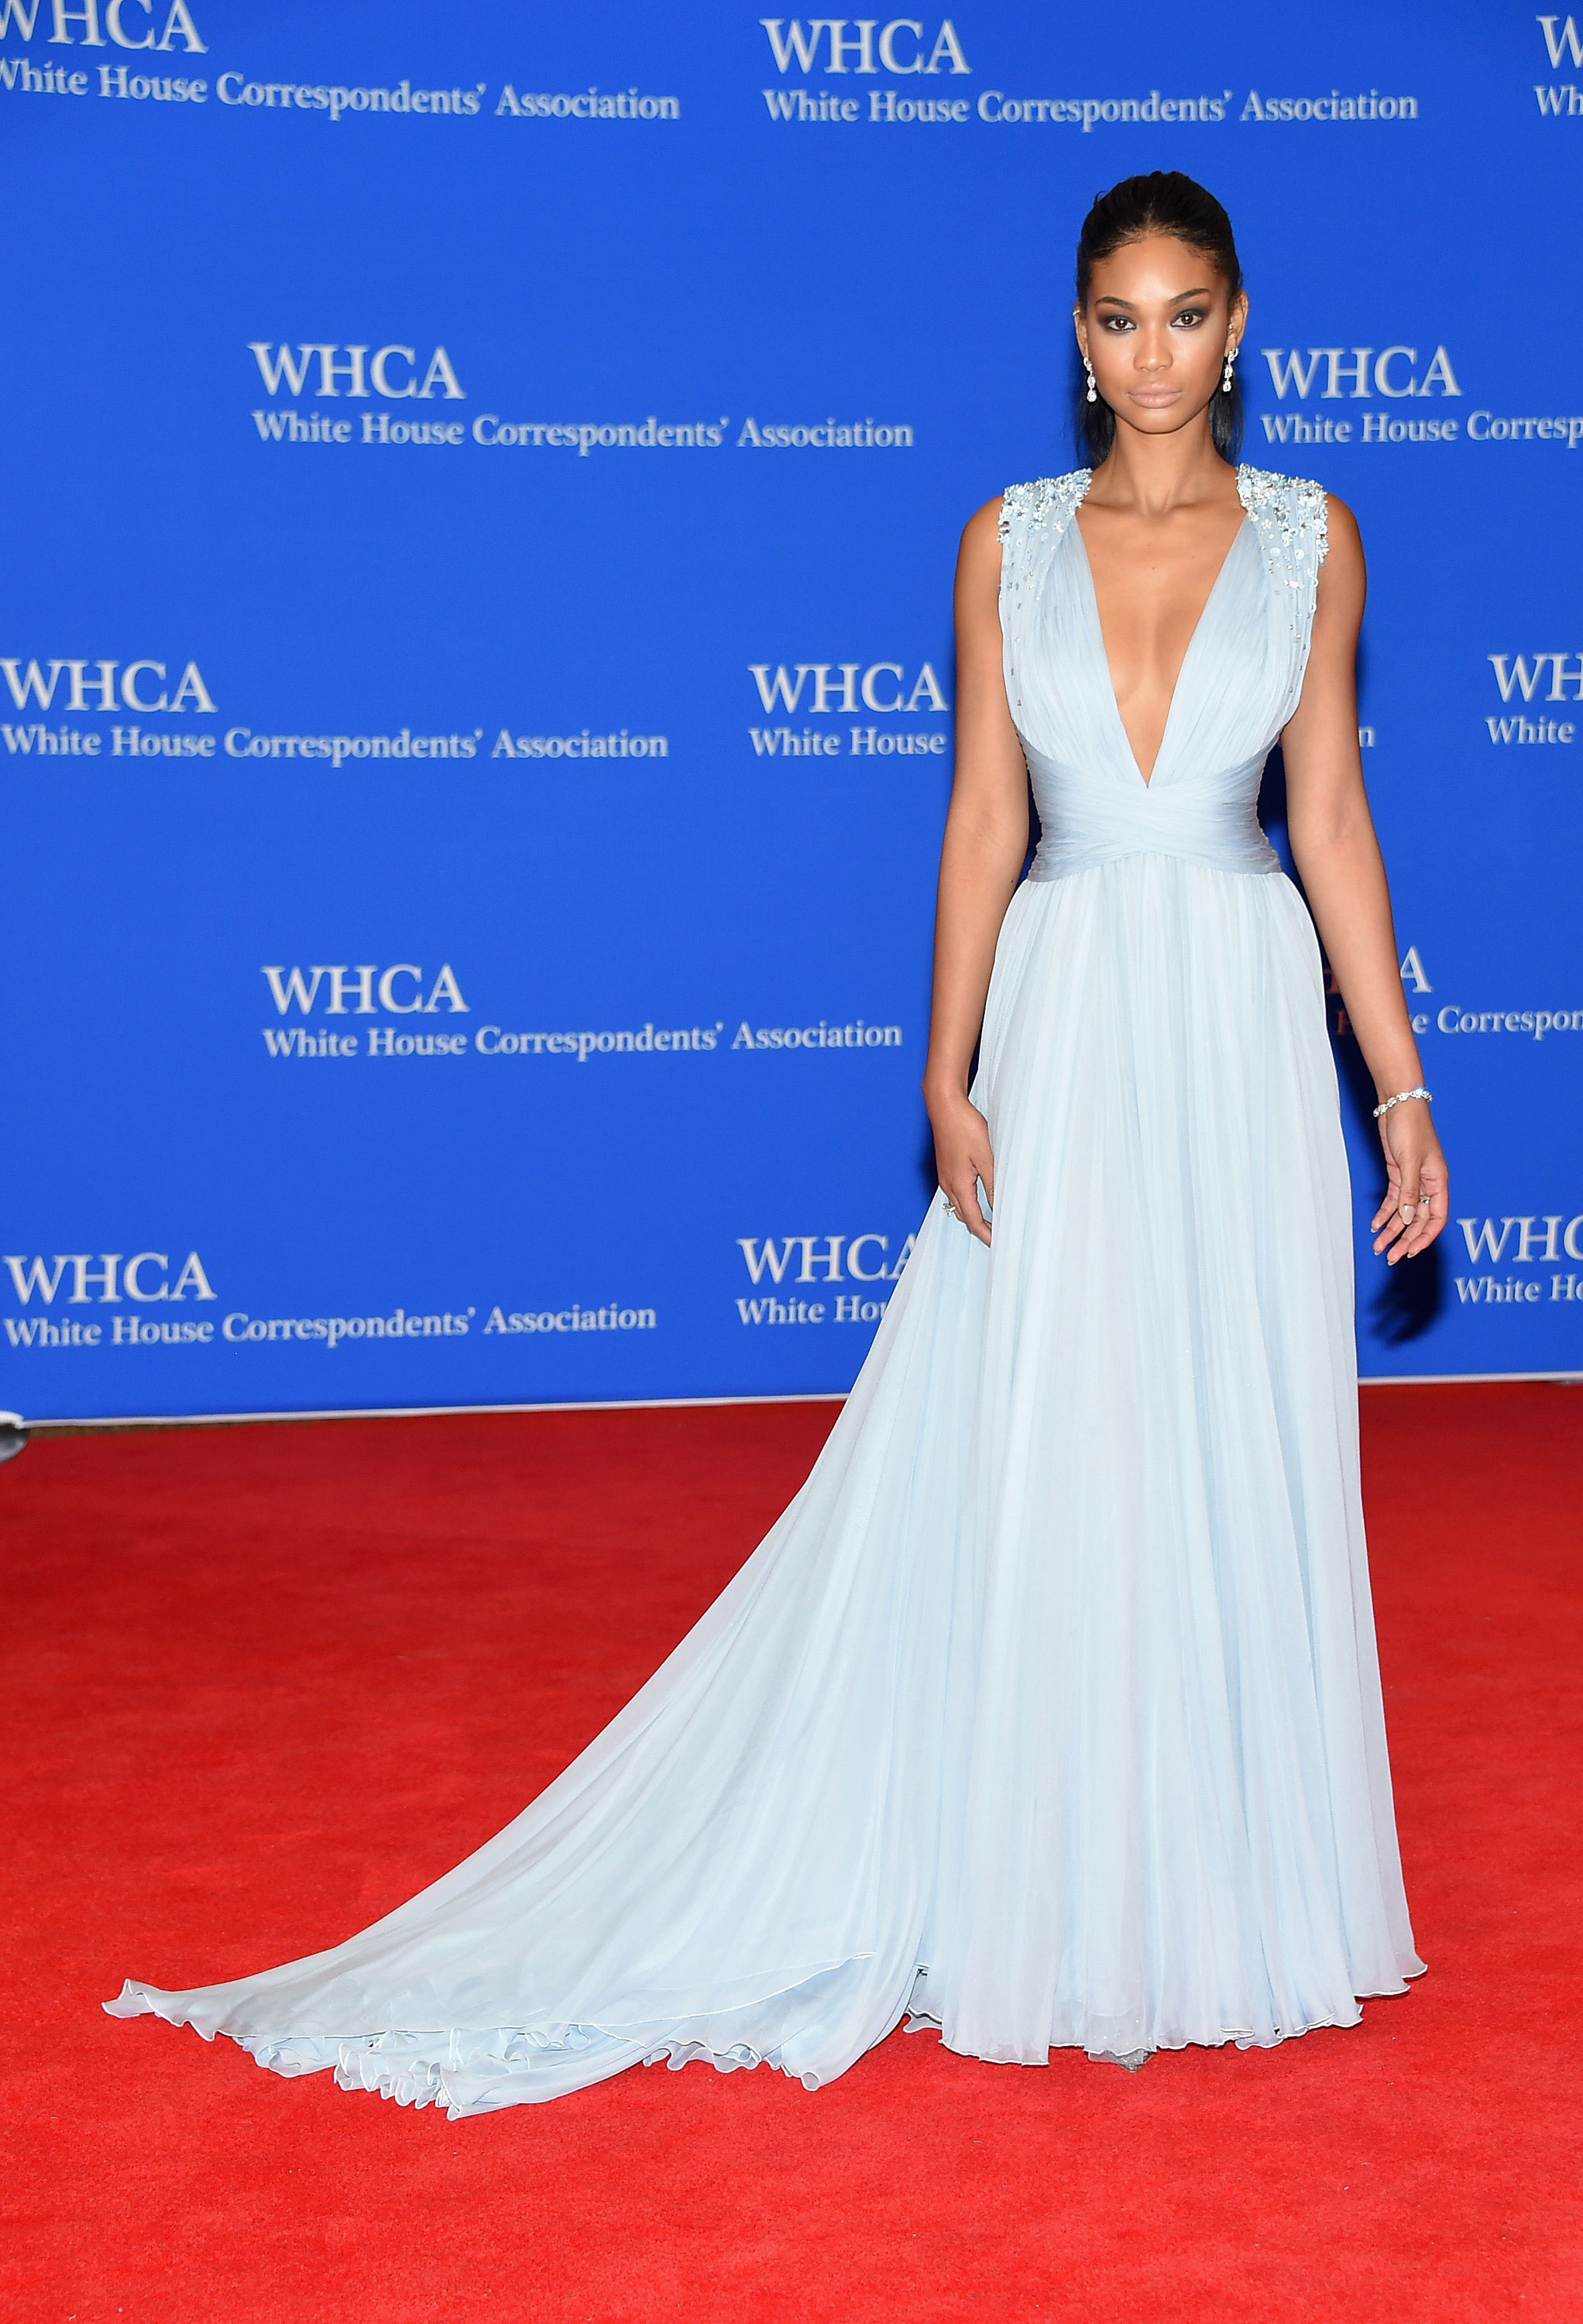 Chanel Iman attends the 101st Annual White House Correspondents' Association Dinner.